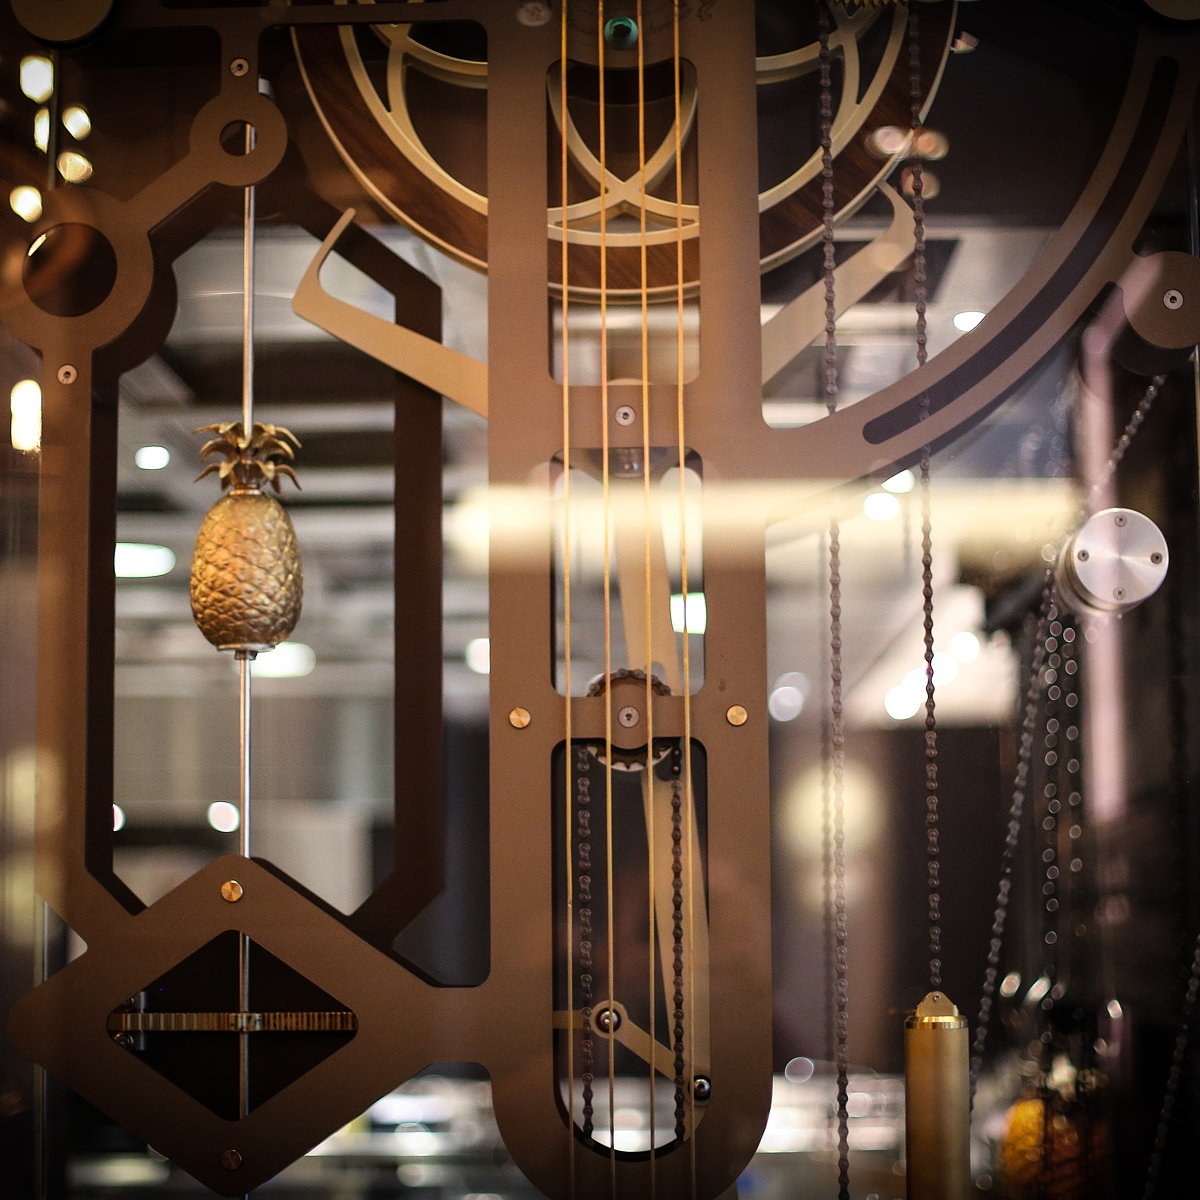 Seymourpowell Creates Bespoke Mechanical Art Piece for Heston Blumenthal's Dinner Restaurant